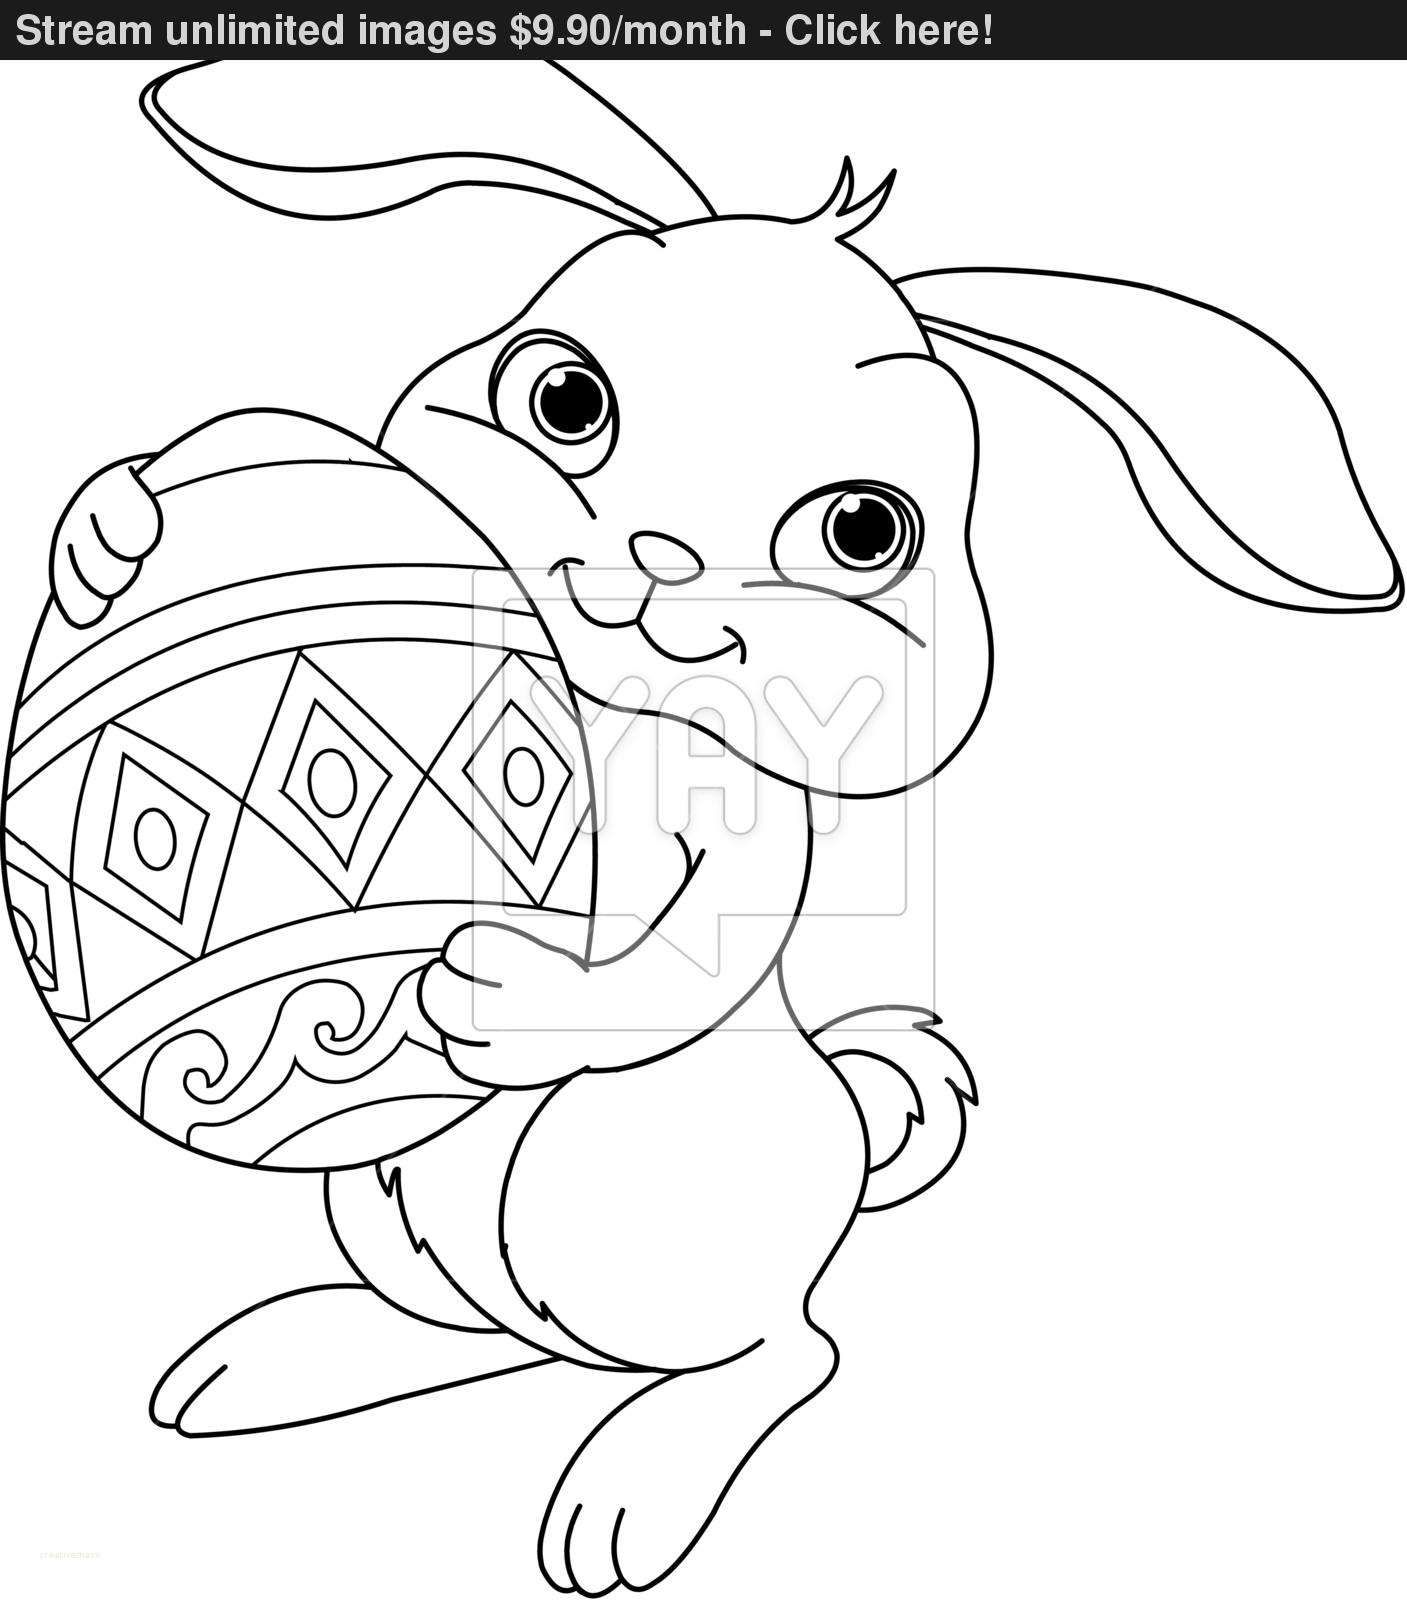 Easy Easter Bunny Drawing Elegant Easter Bunny Coloring Pages Diaet Bunny Coloring Pages Easter Bunny Colouring Bunny Drawing